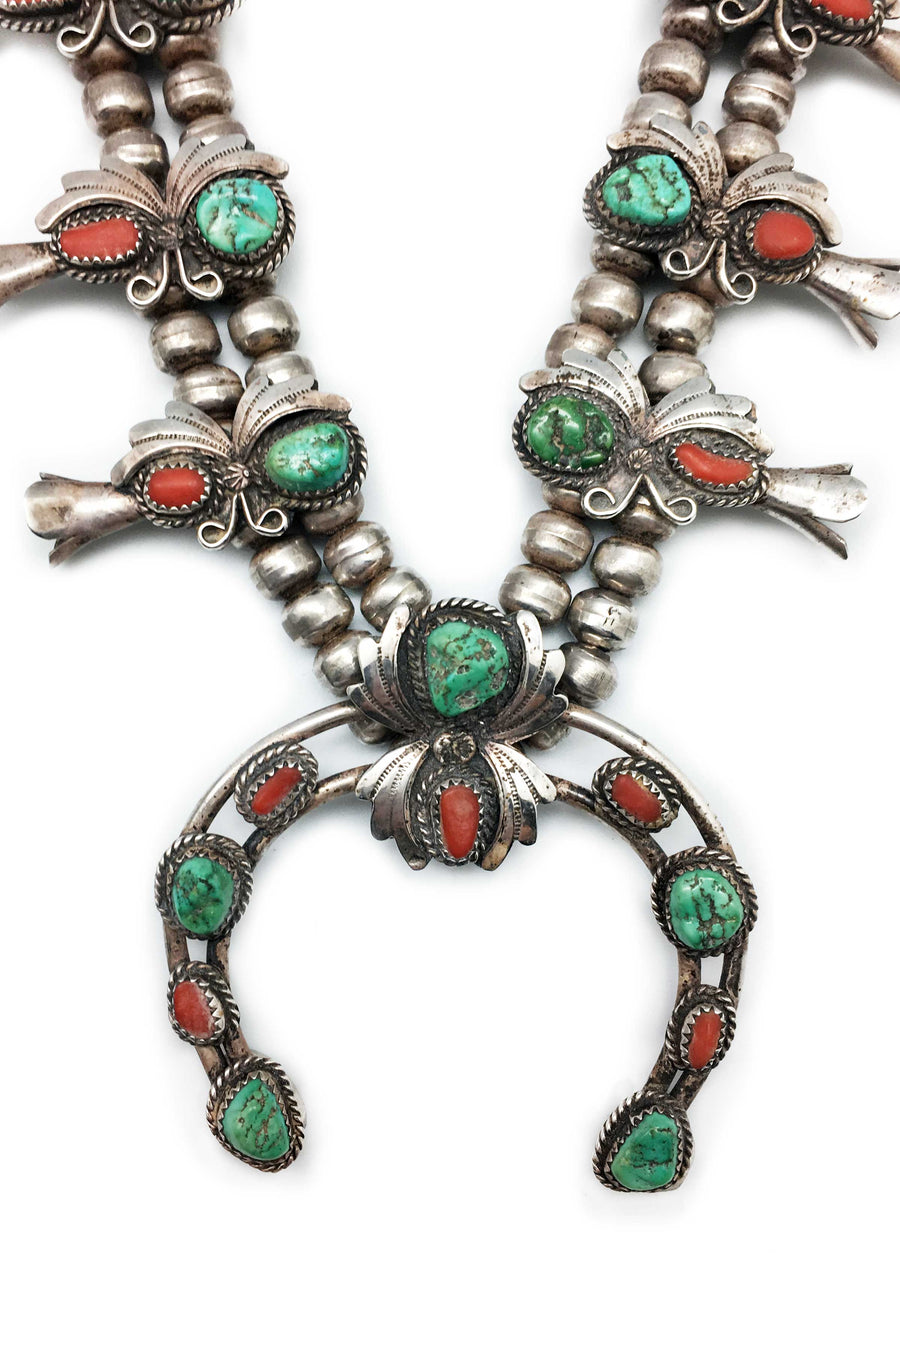 Necklace, Squash Blossom, Vintage, Turquoise & Coral, 1970's